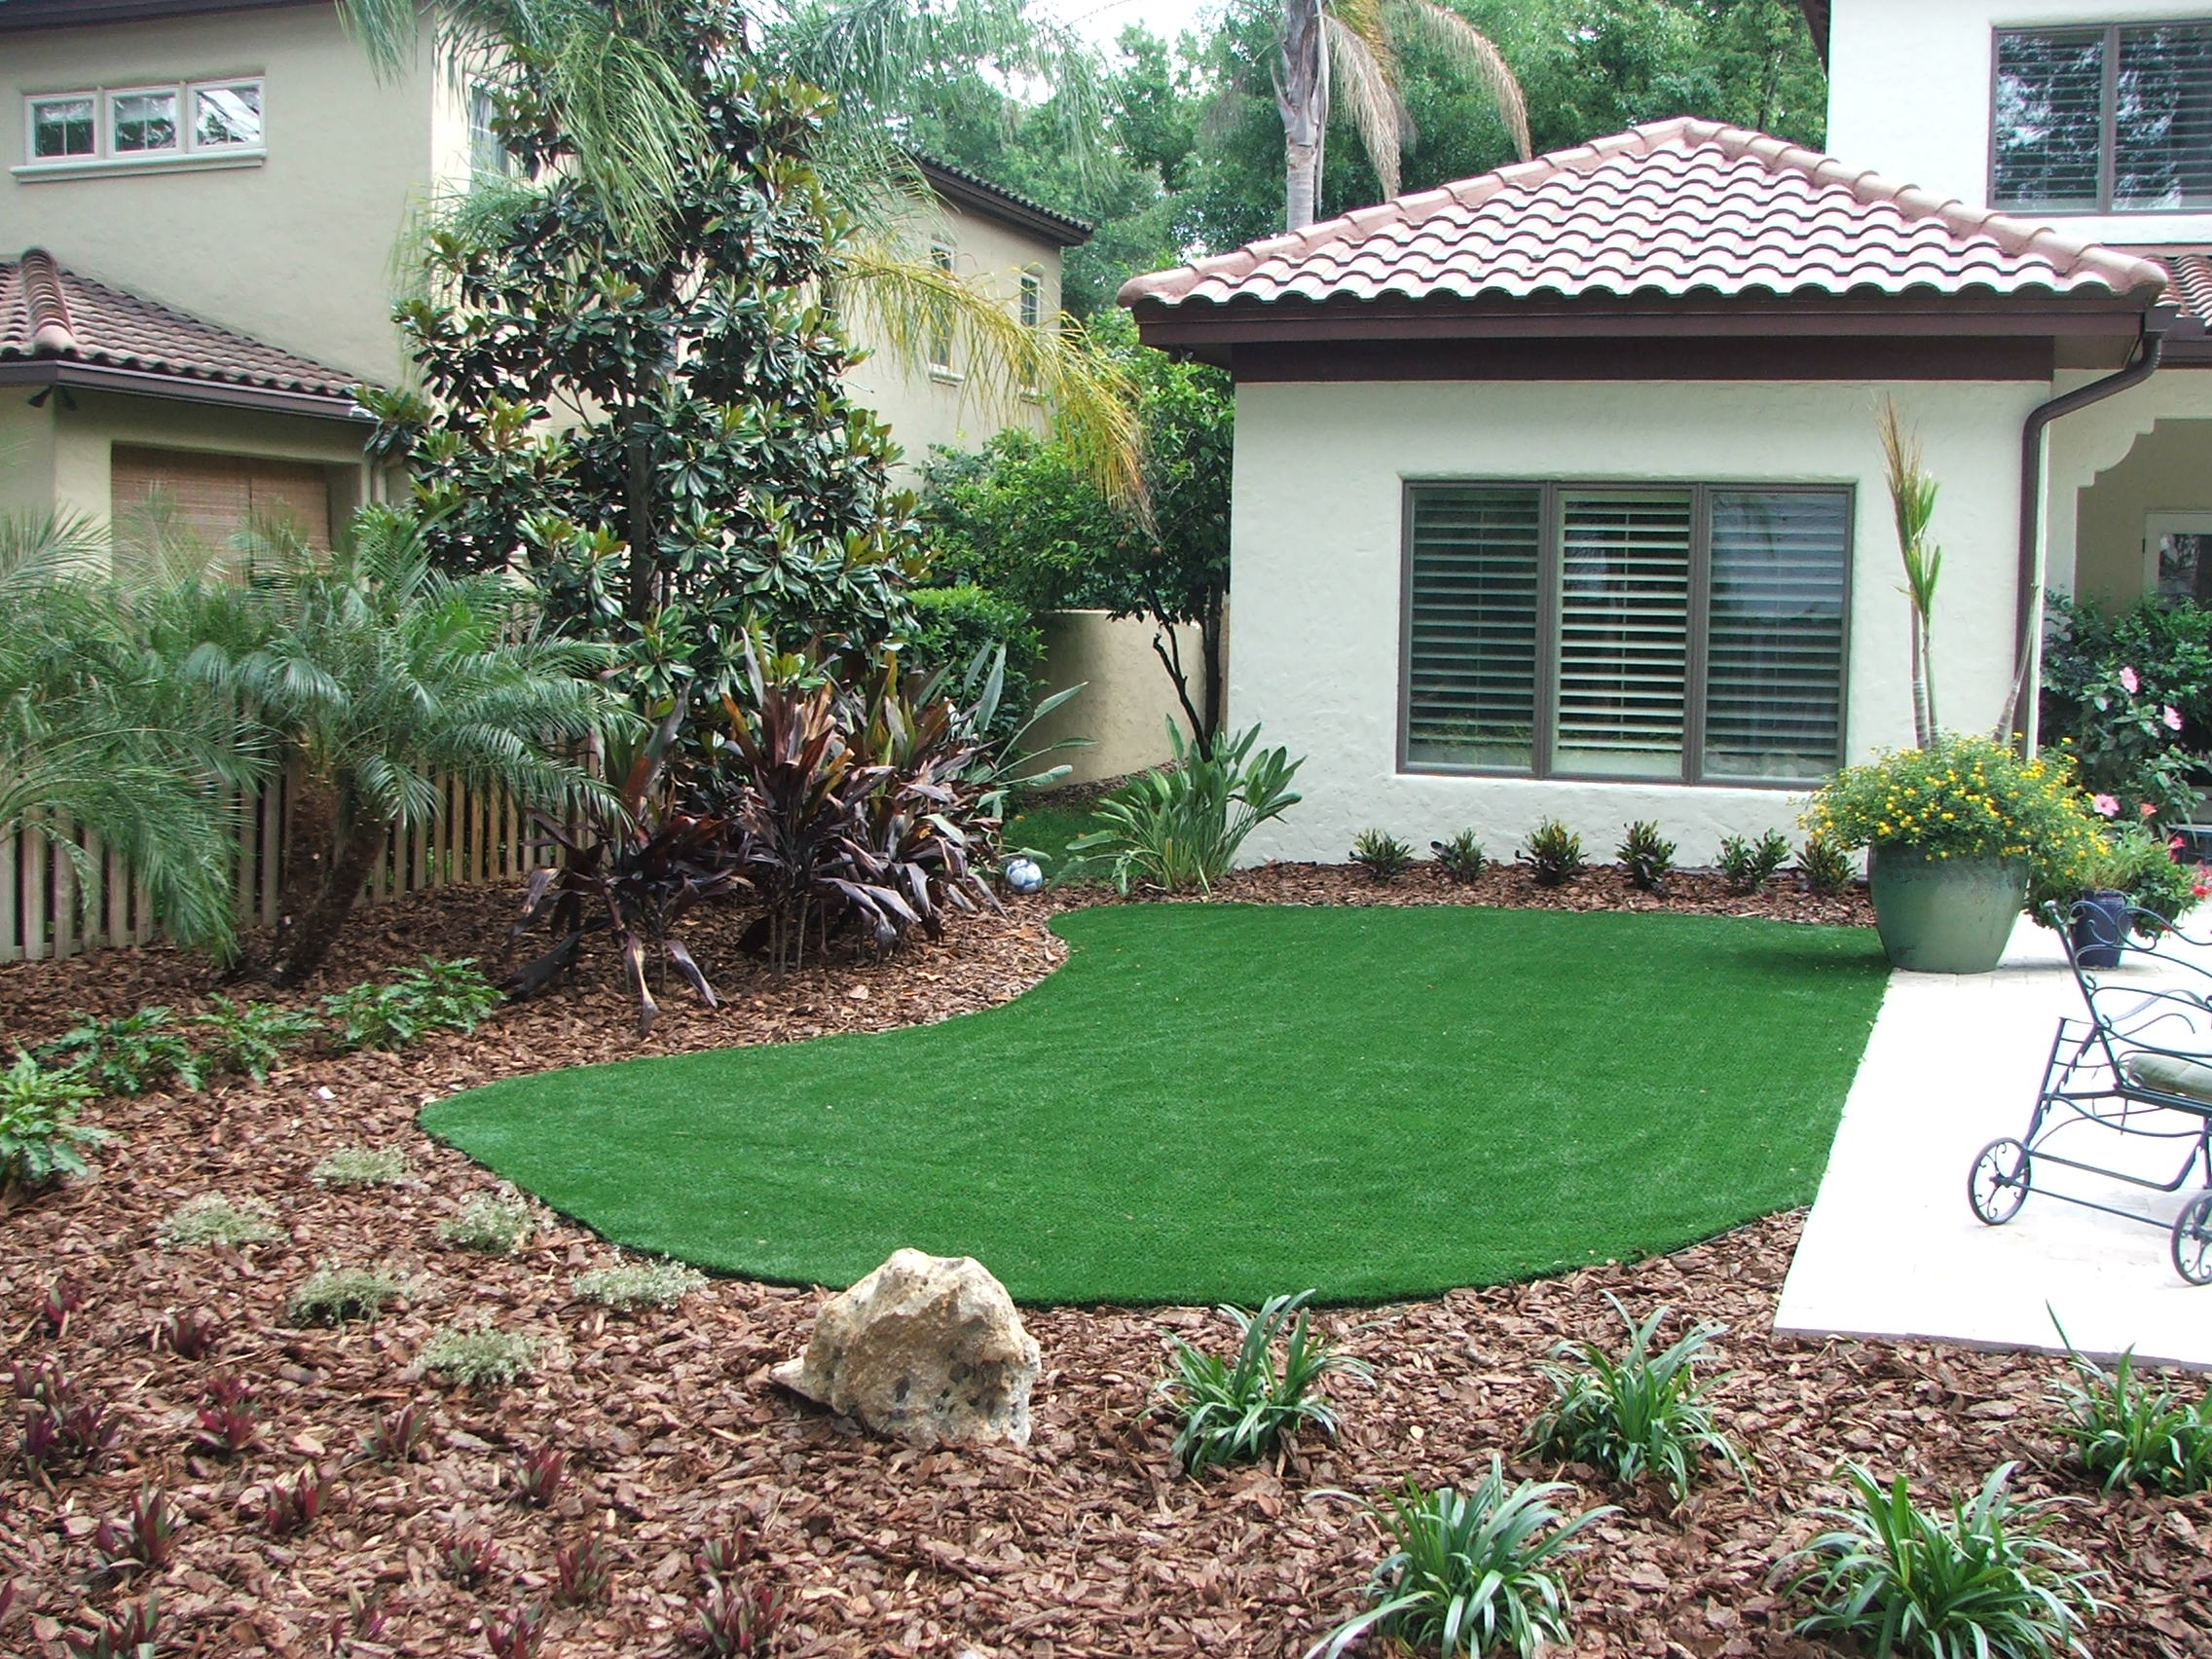 John Madison Landscape - Artificial Turf | John Madison Landscape